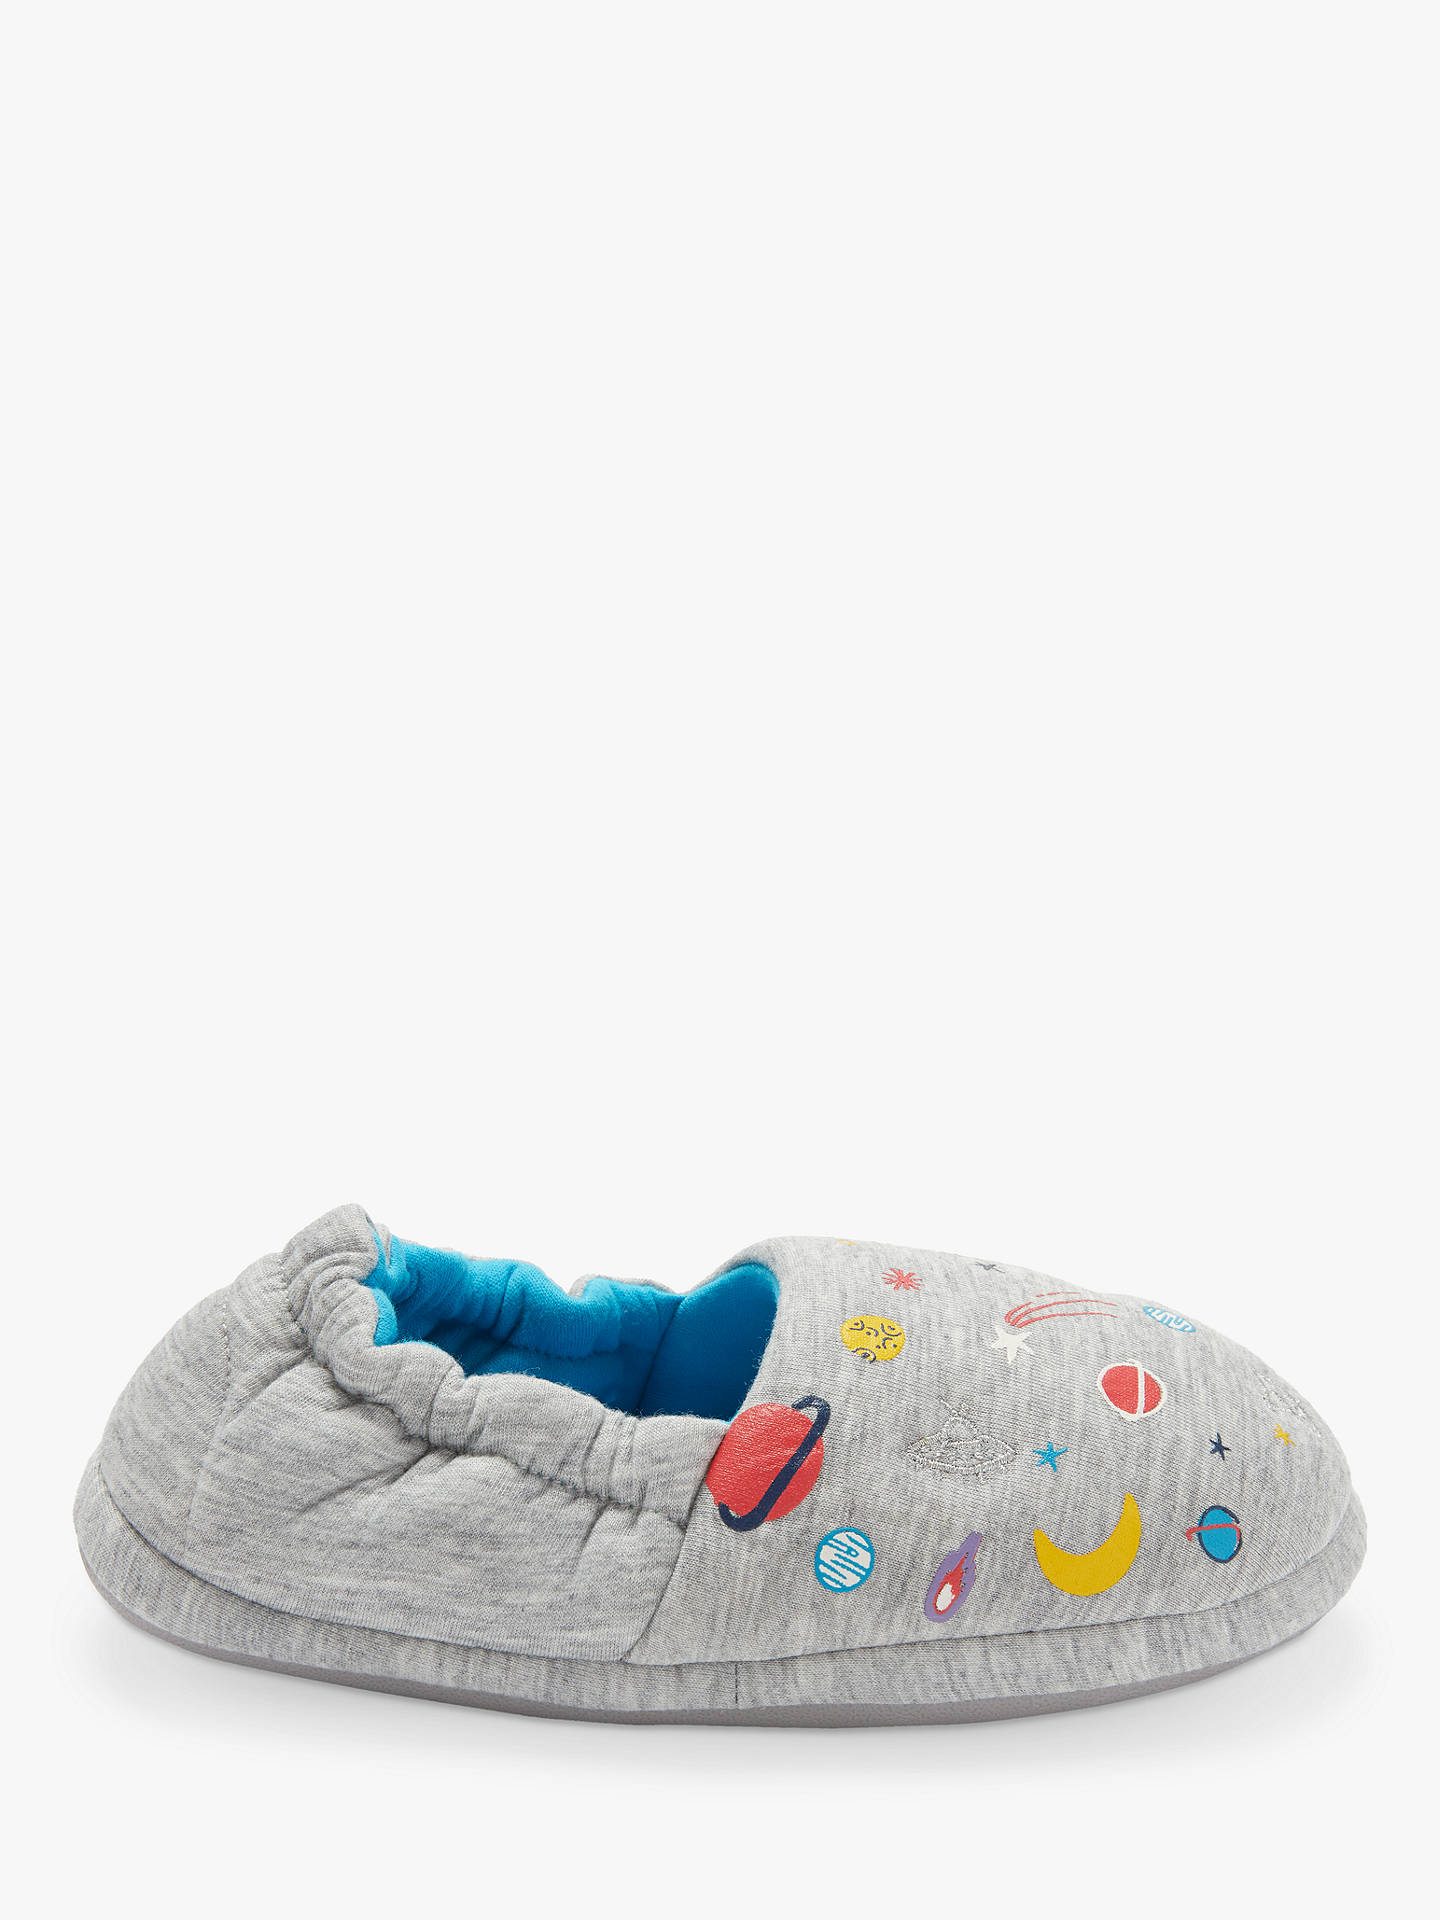 BuyJohn Lewis & Partners Space Slippers, Grey, 6 Jnr Online at johnlewis.com